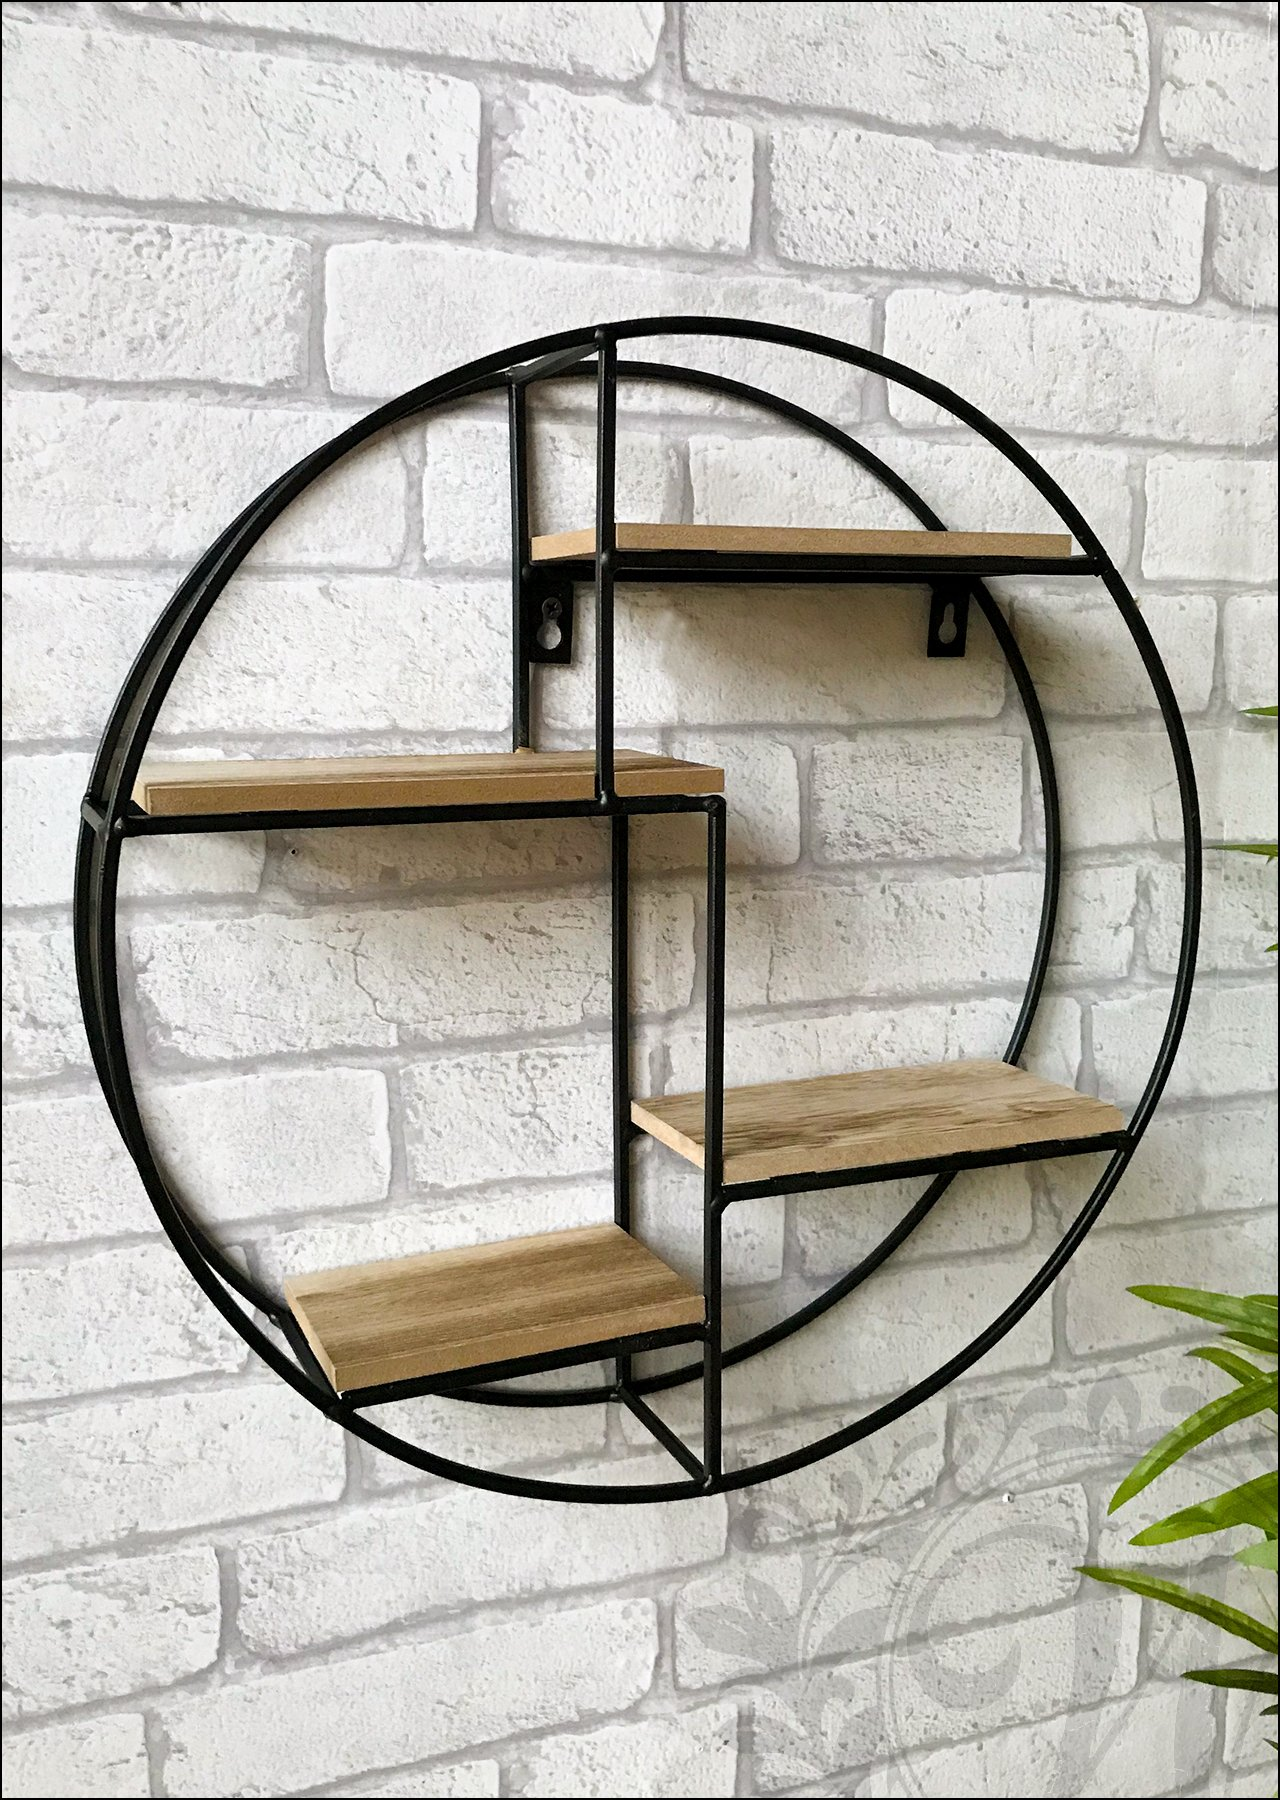 Black Metal Circle Round Wall Unit with Wooden Shelves Industrial Style Four Levels Iron Display